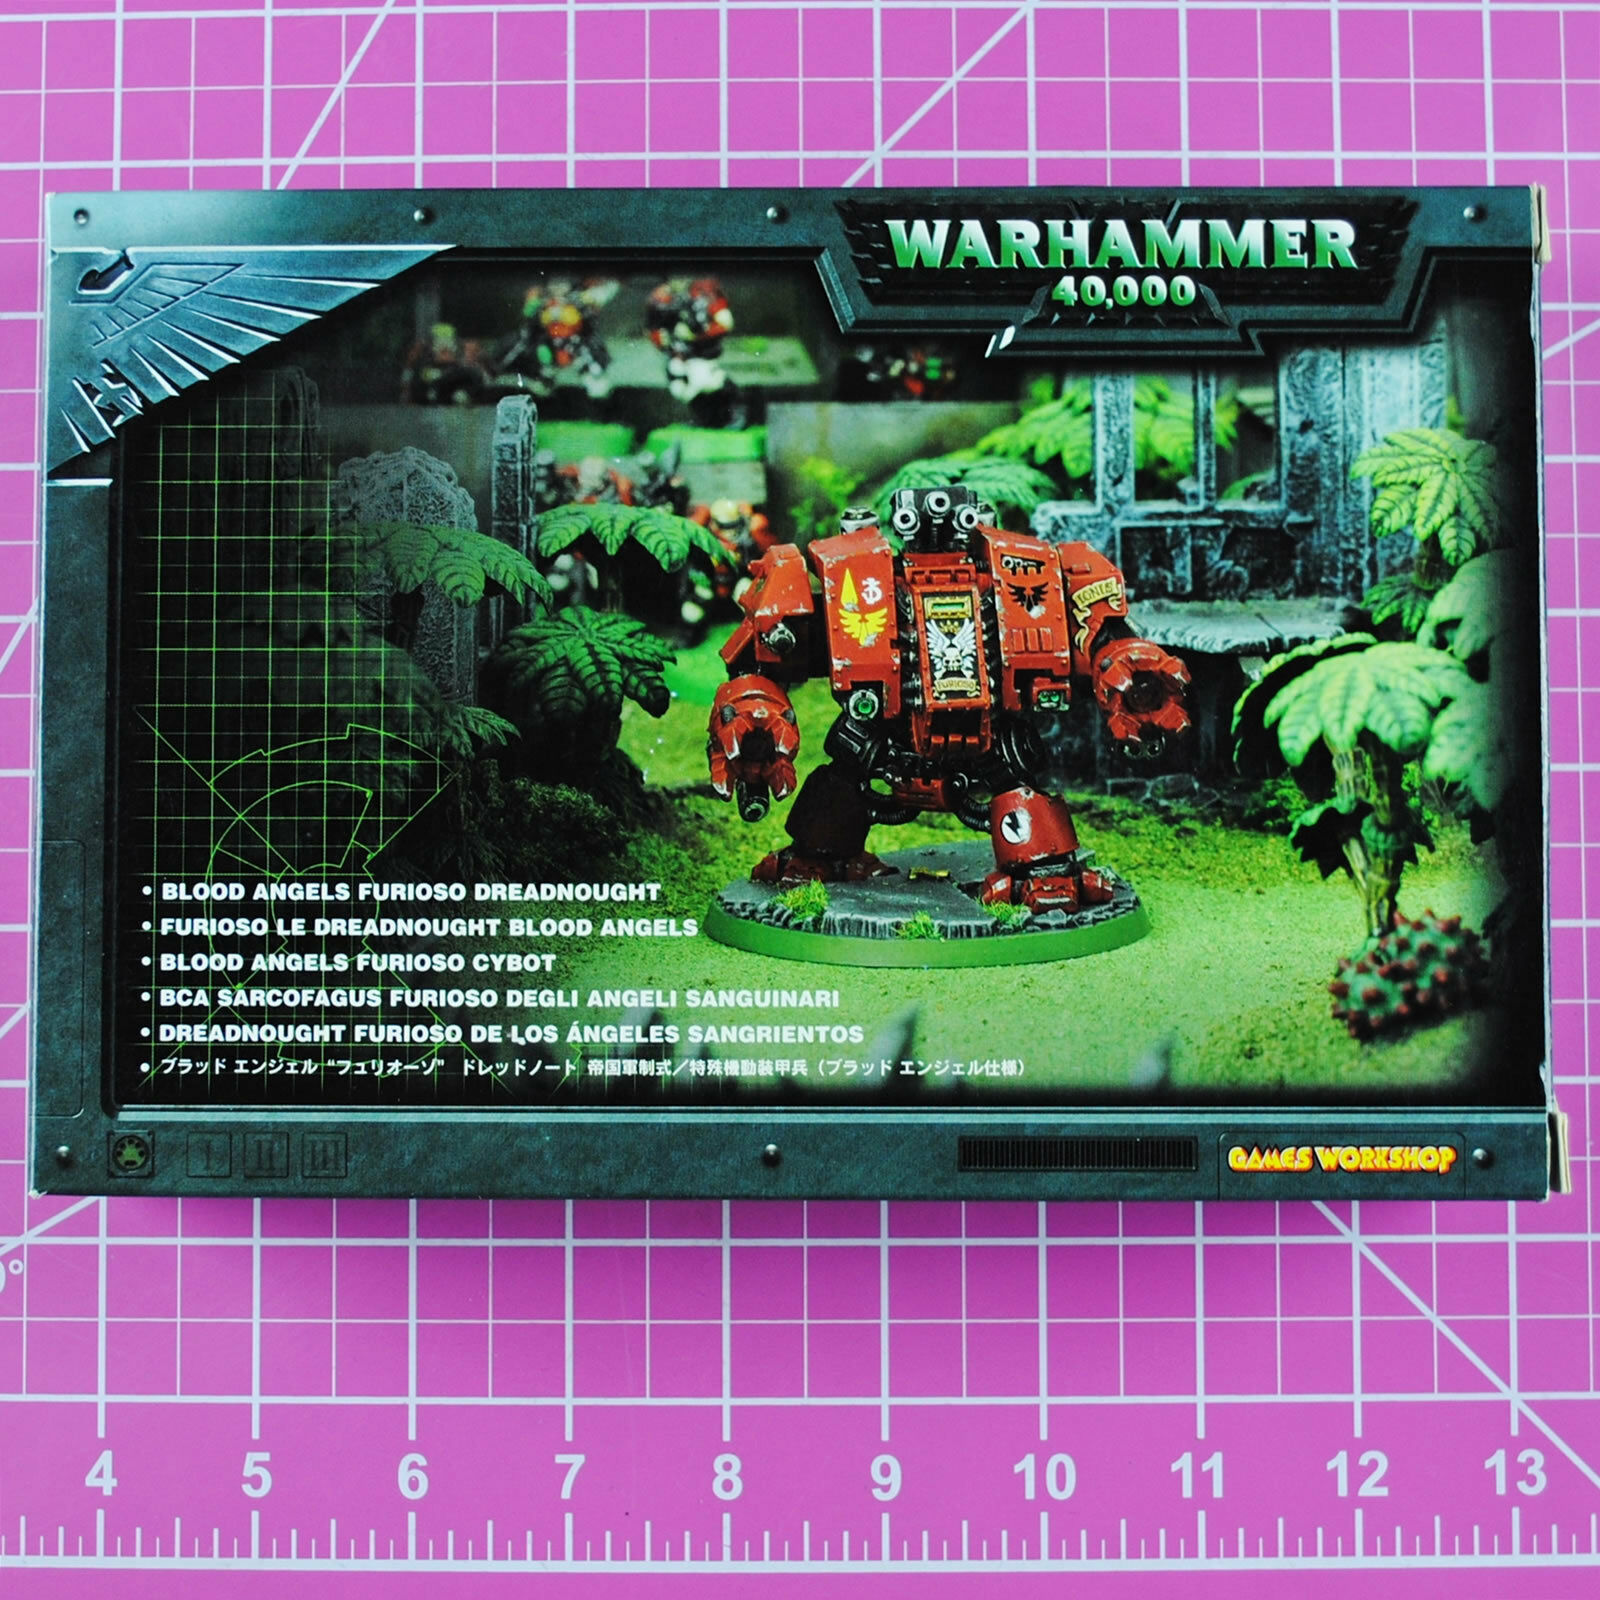 Warhammer 40K Blood Angels Furioso Dreadnought - Metal OOP, Citadel Space Marine